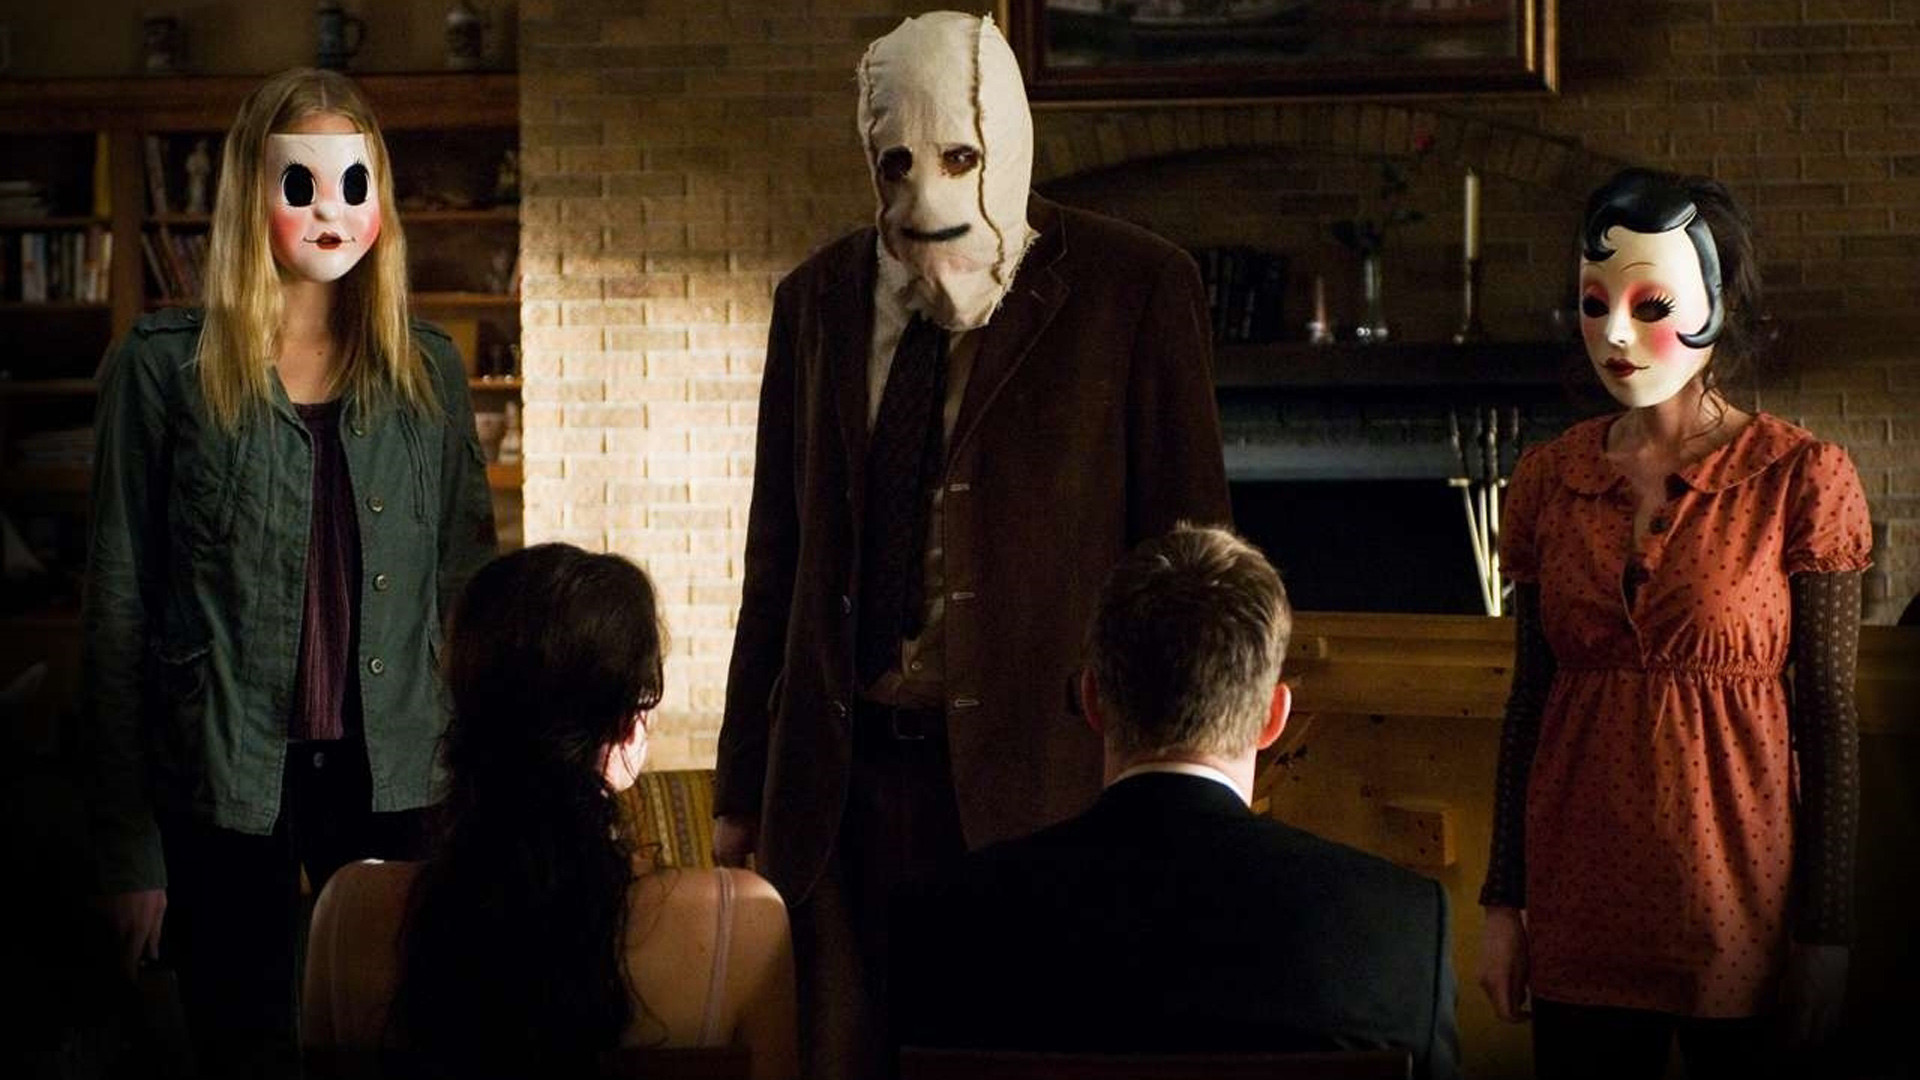 This is a still from The Strangers.